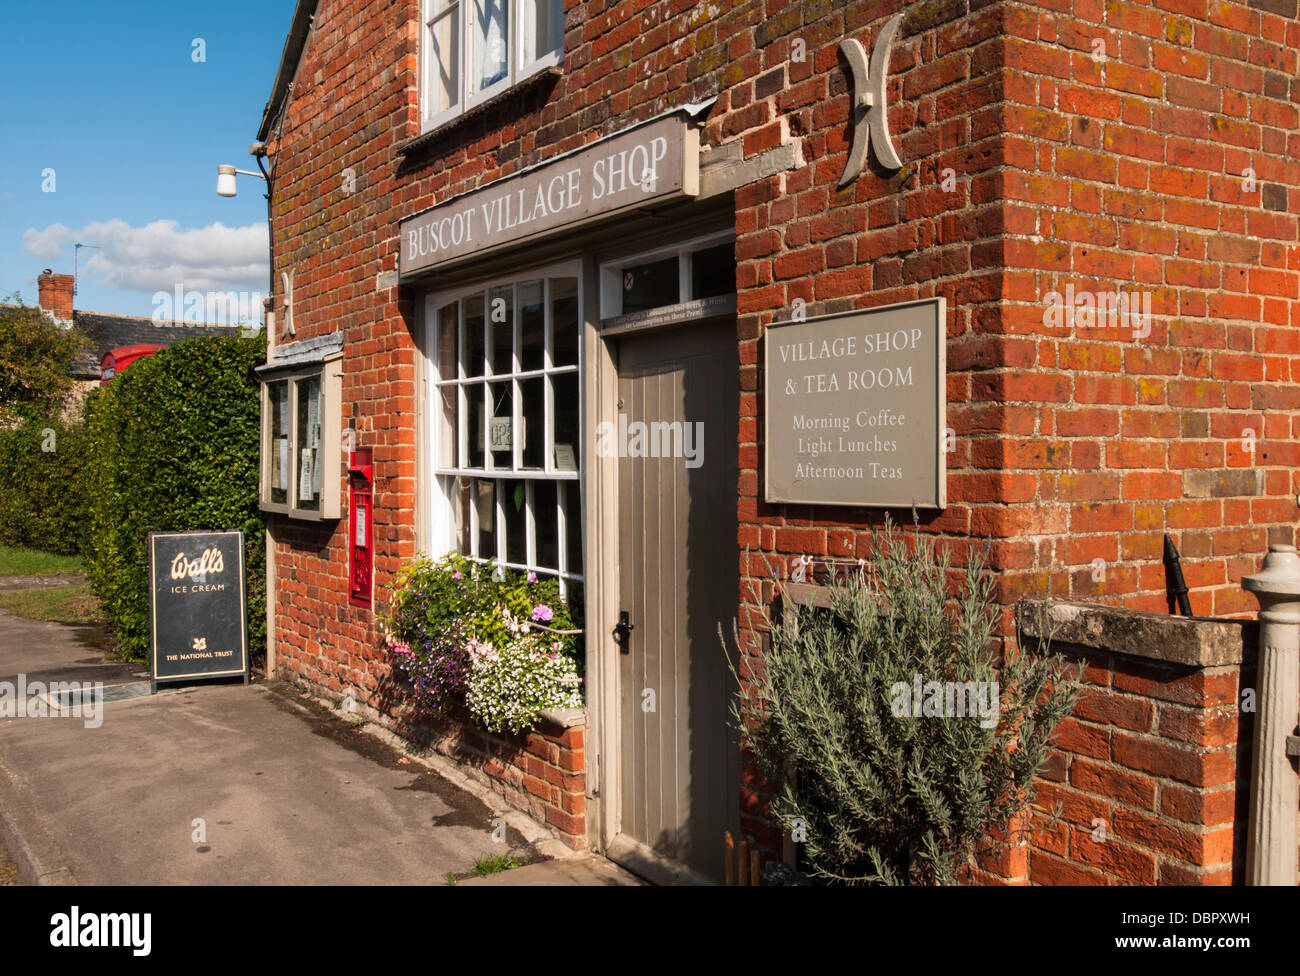 Village shop and tearoom in the National Trust estate village of Buscot on the River Thames near Faringdon, Oxfordshire, - Stock Image